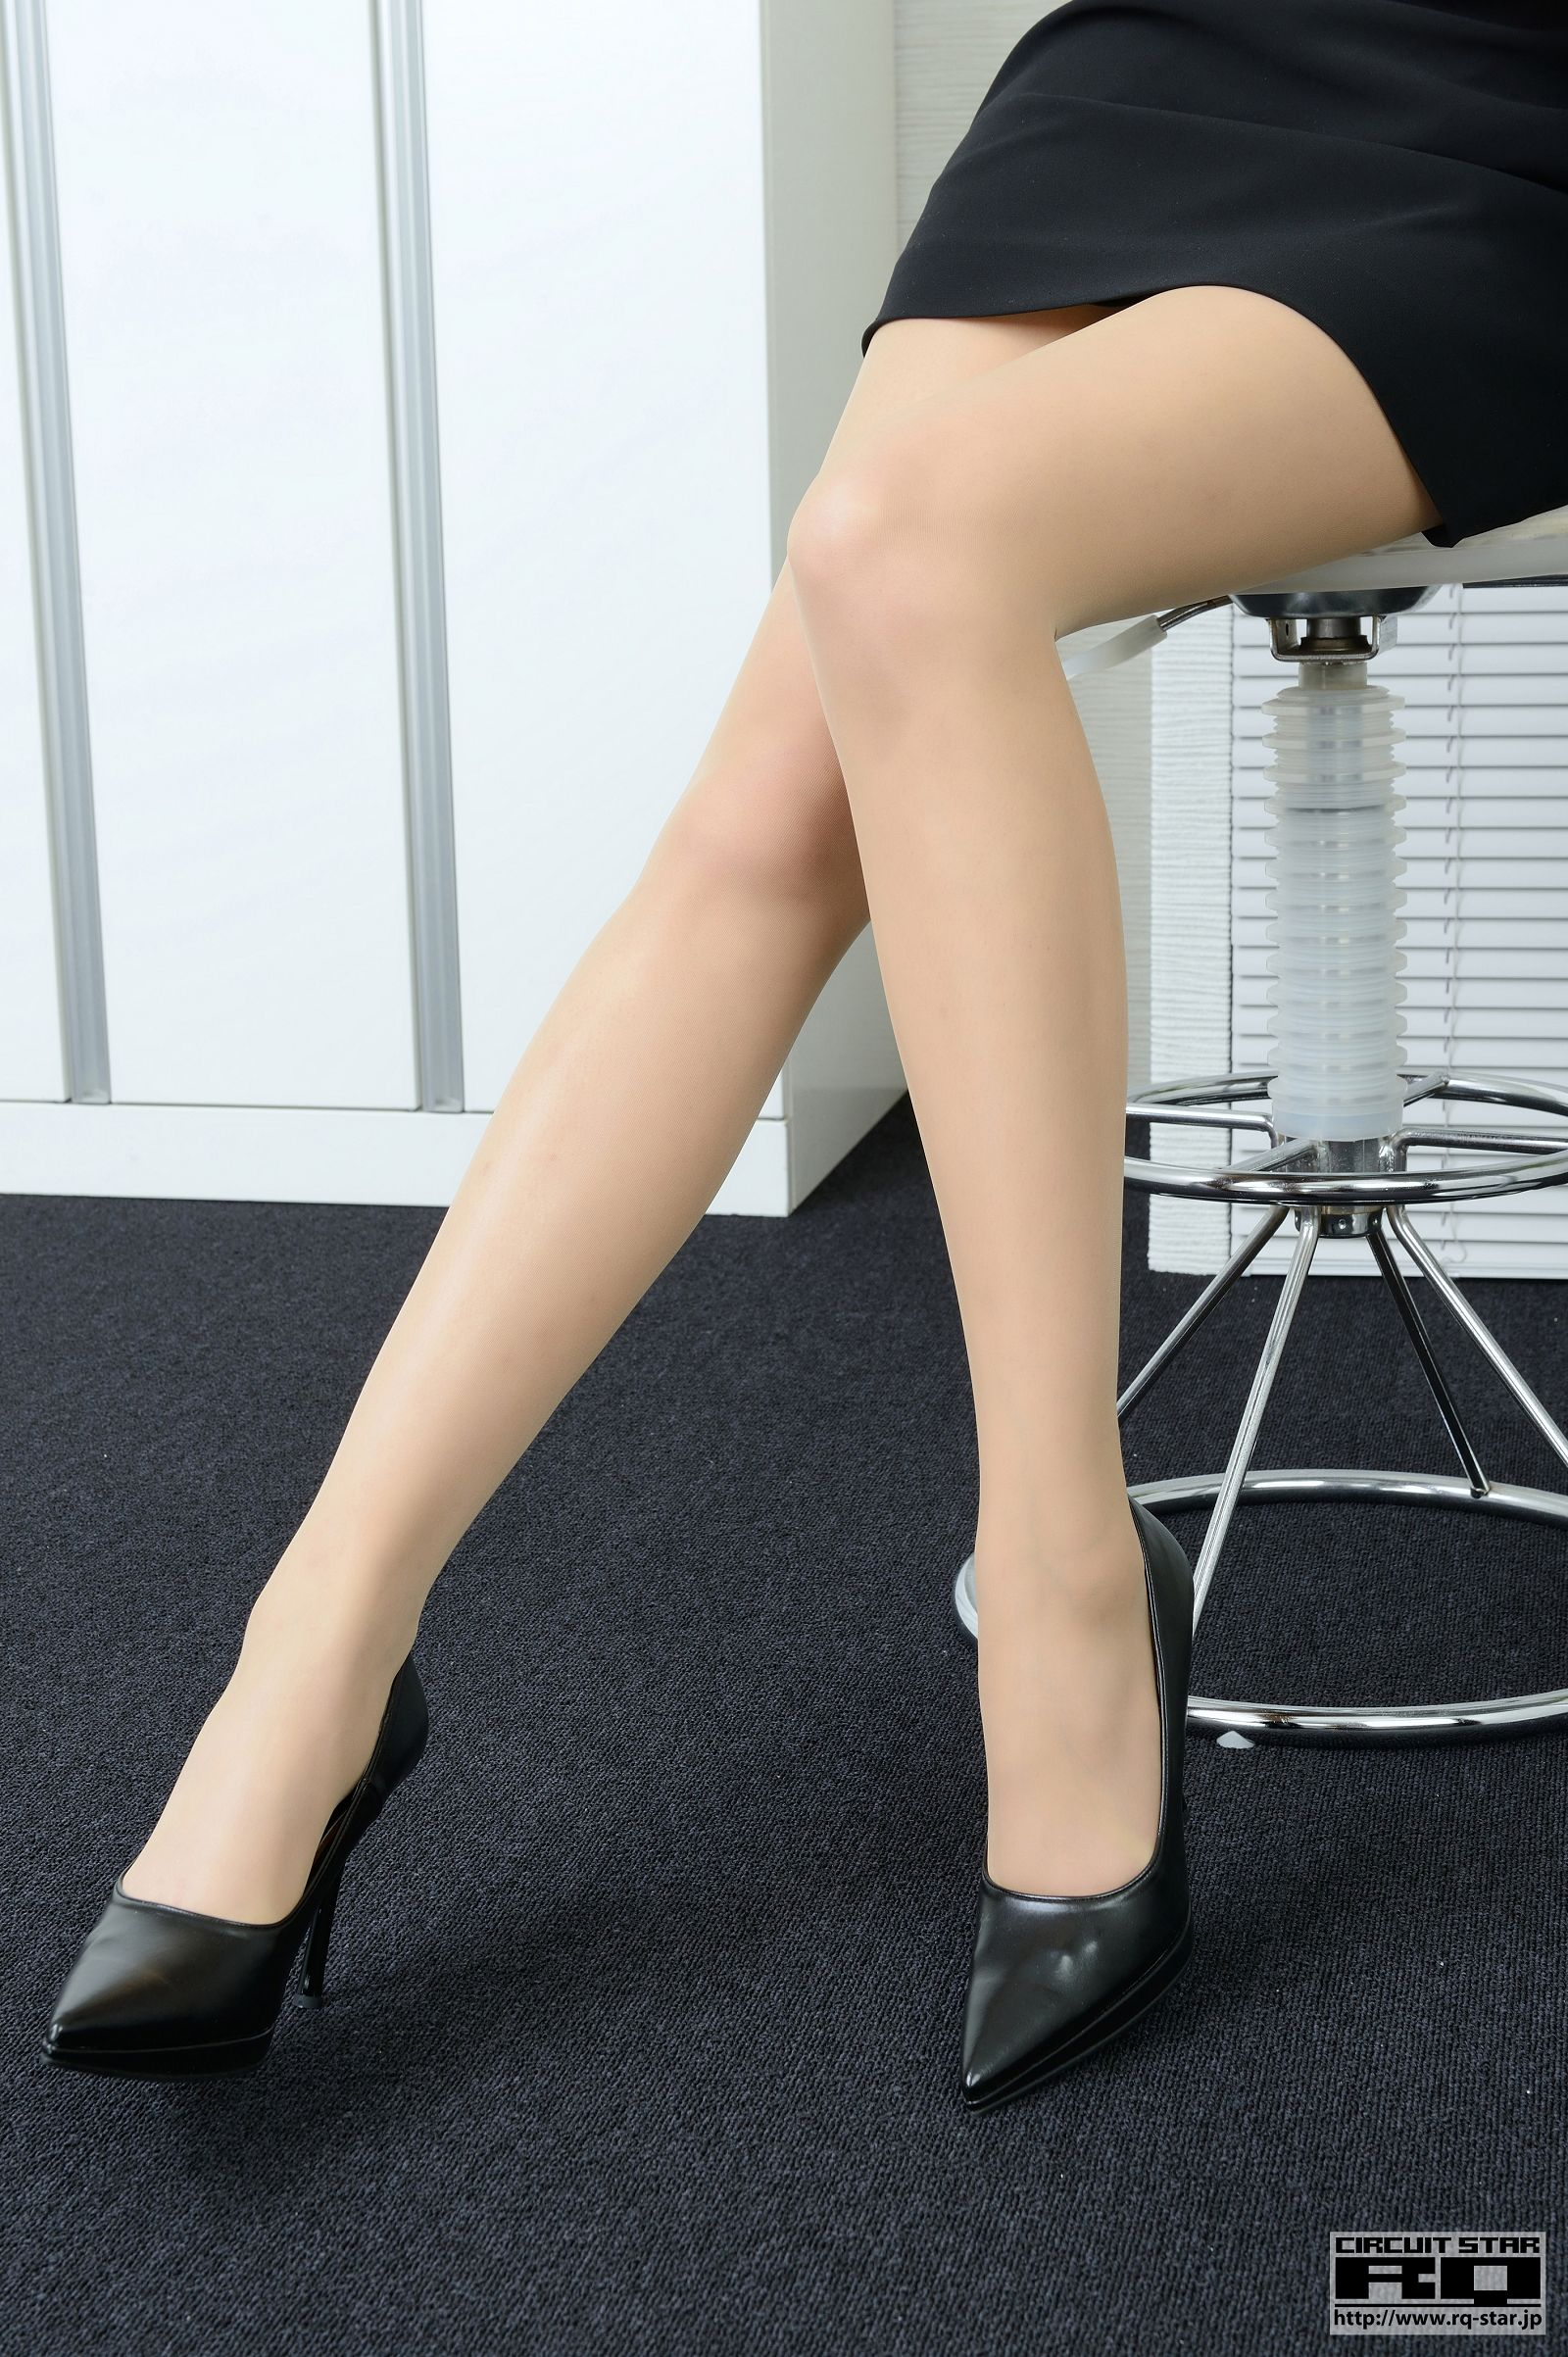 [RQ STAR美女] NO.00891 Miho Abe あべみほ Office Lady[85P] RQ STAR 第1张